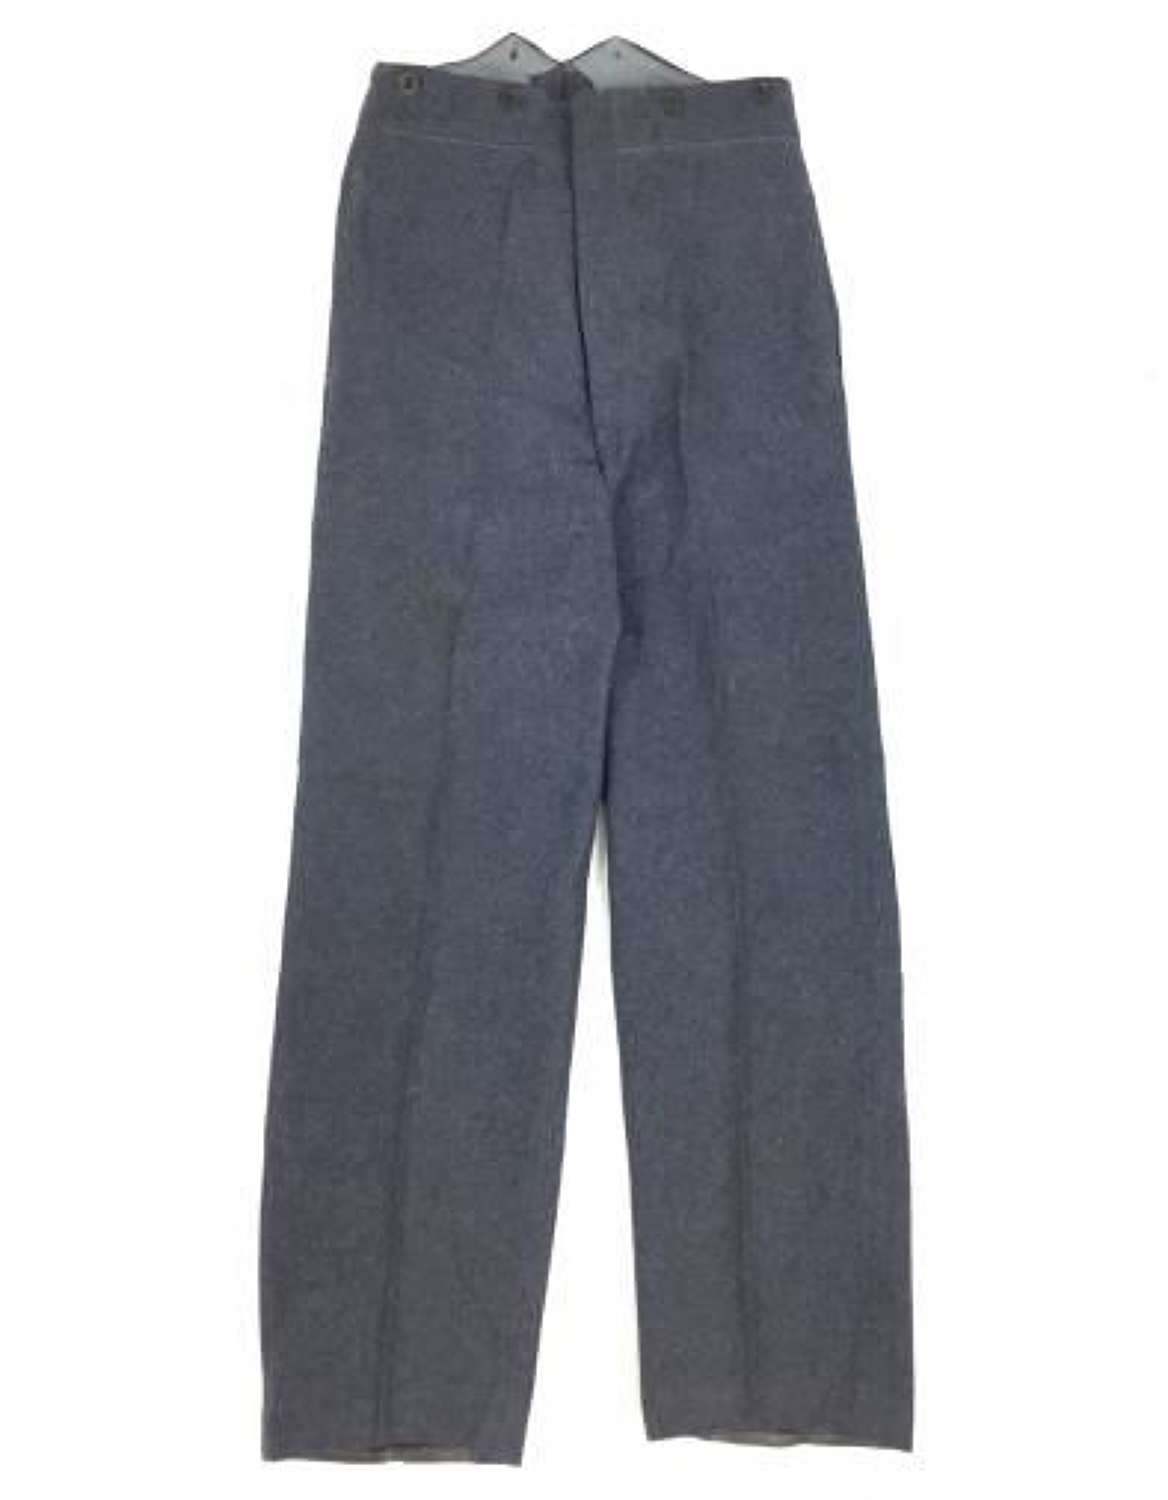 Original WW2 Pattern RAF OA Trousers Dated 1950 - Size 15